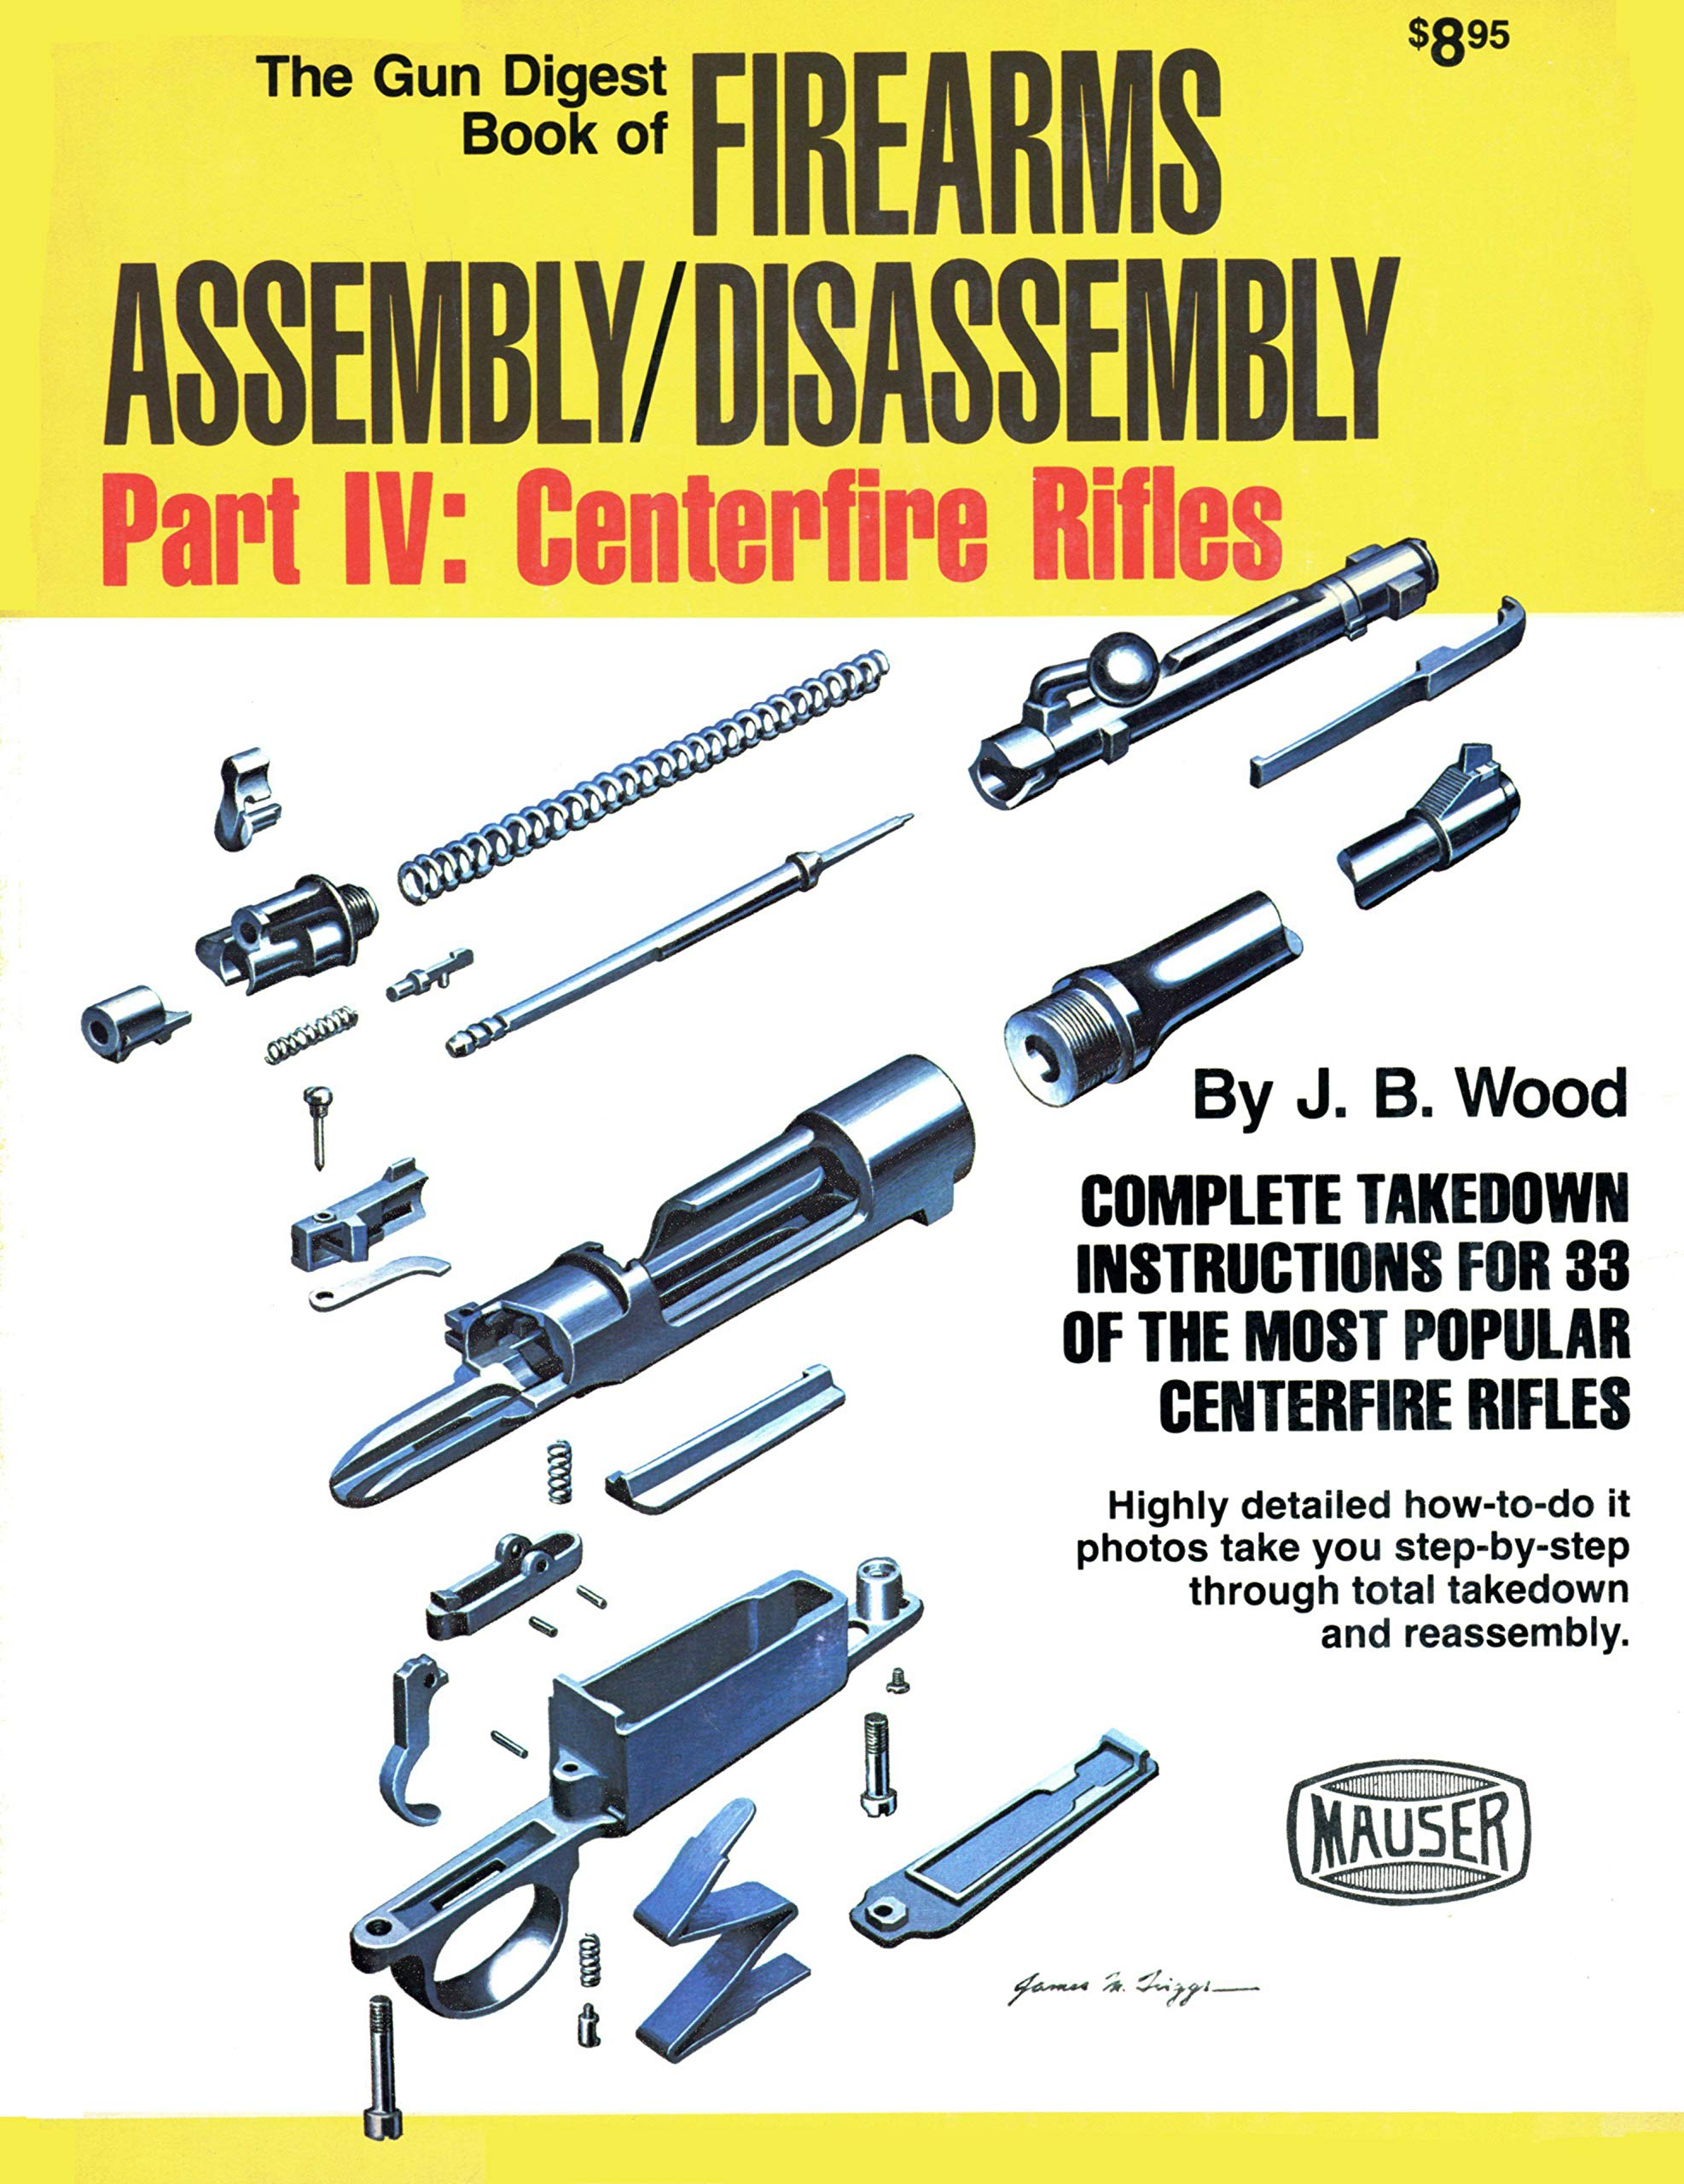 The Gun Digest Book of Firearms Assembly/Disassembly Part IV